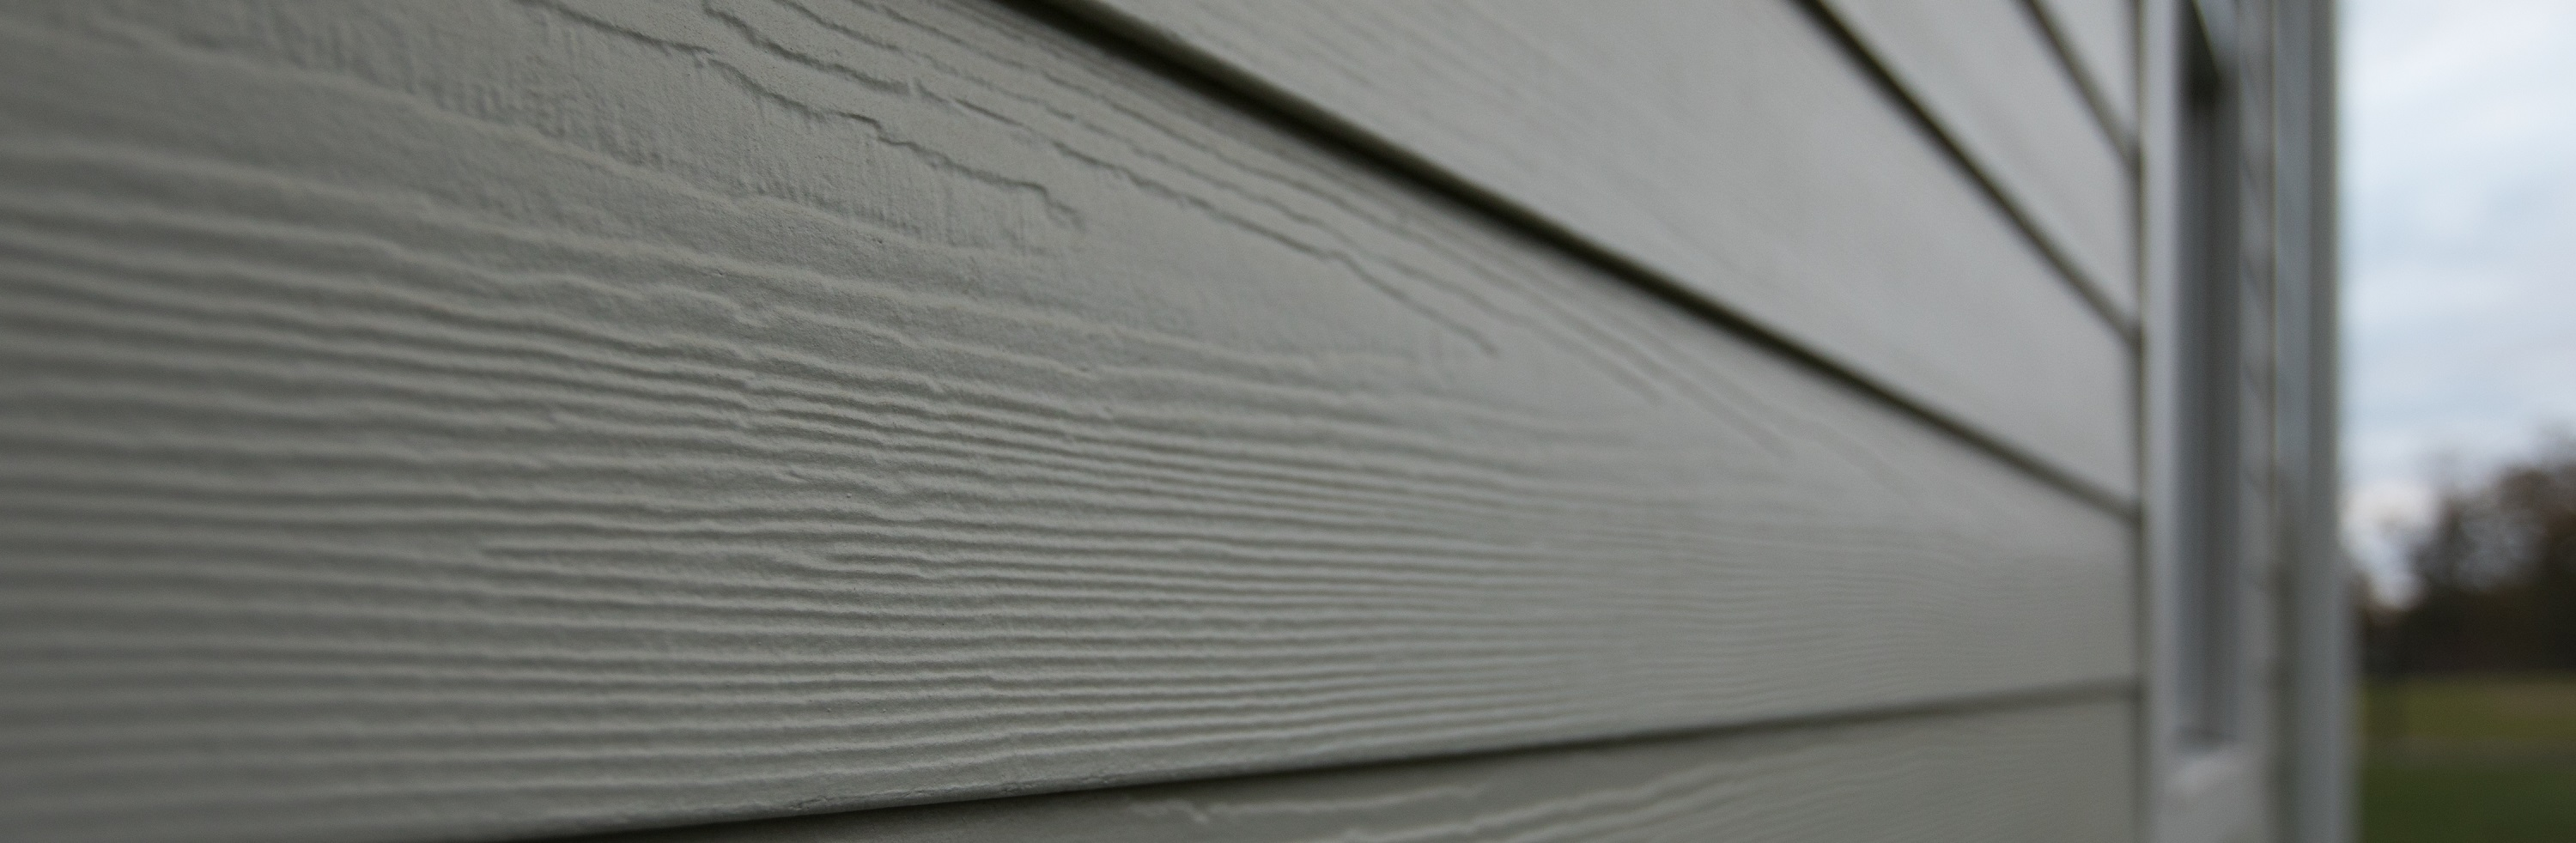 Repainting vs Replacing Your Home's Siding